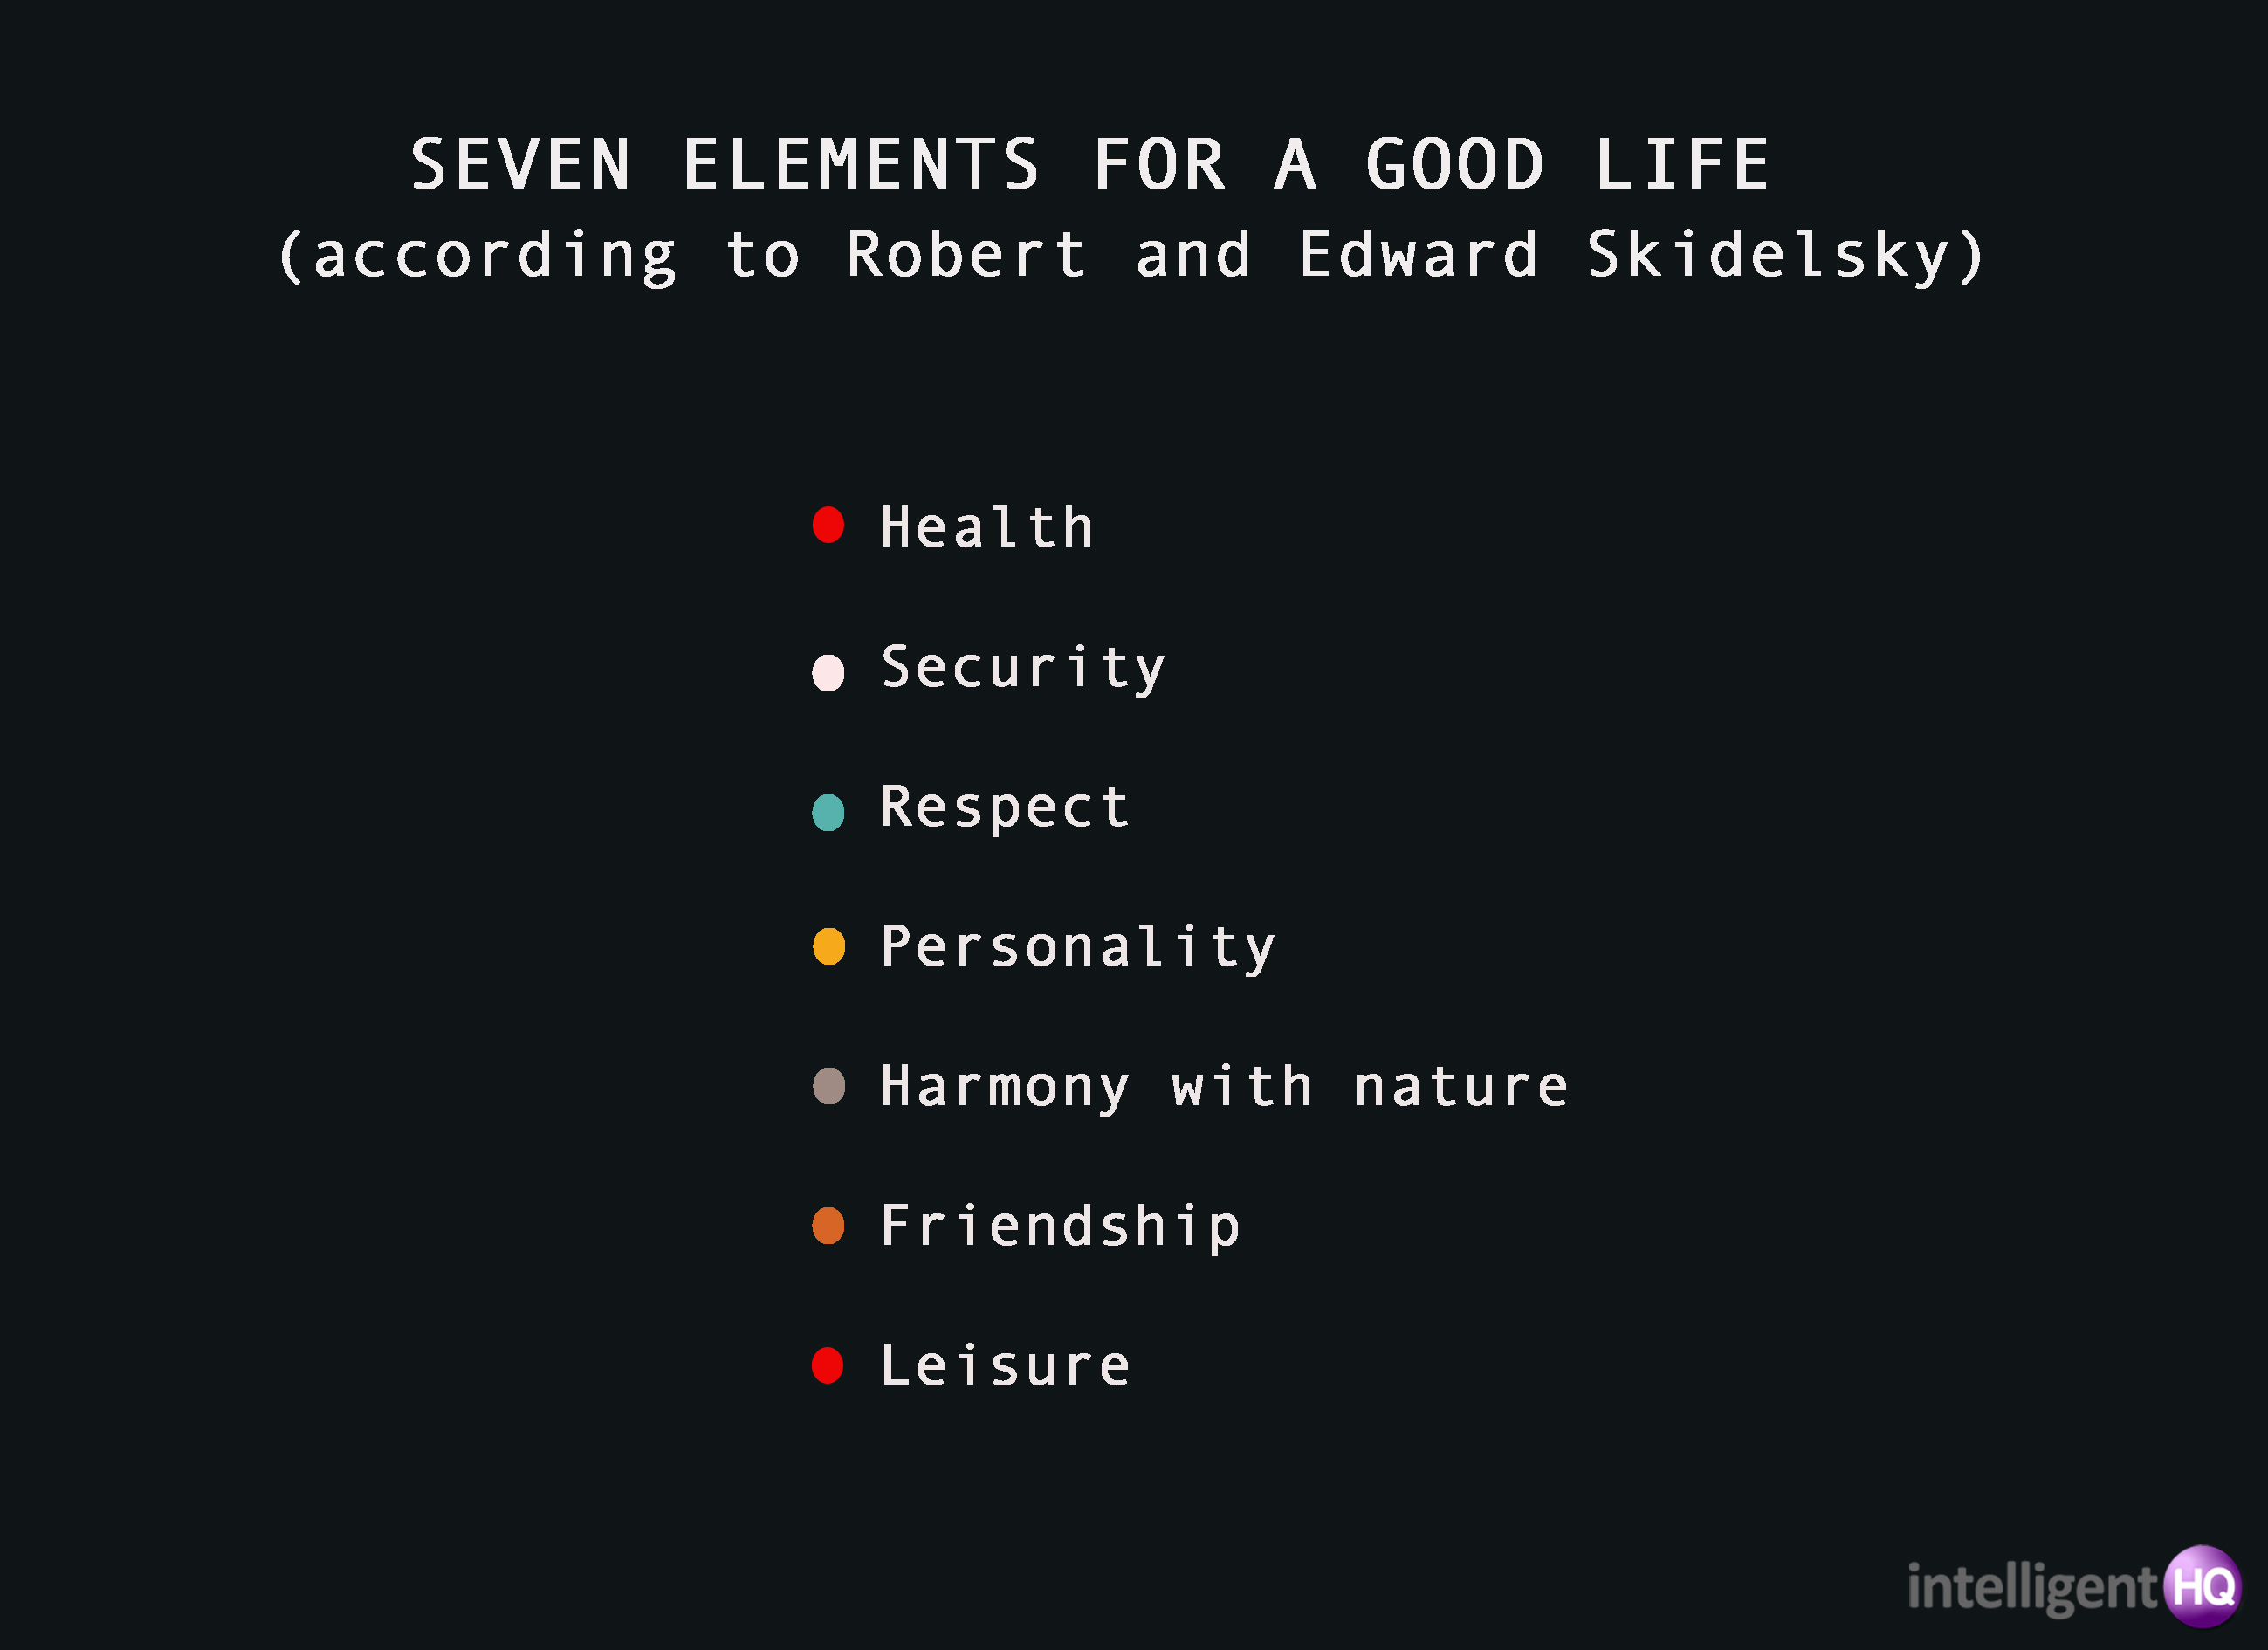 7 elements for a good life Intelligenthq